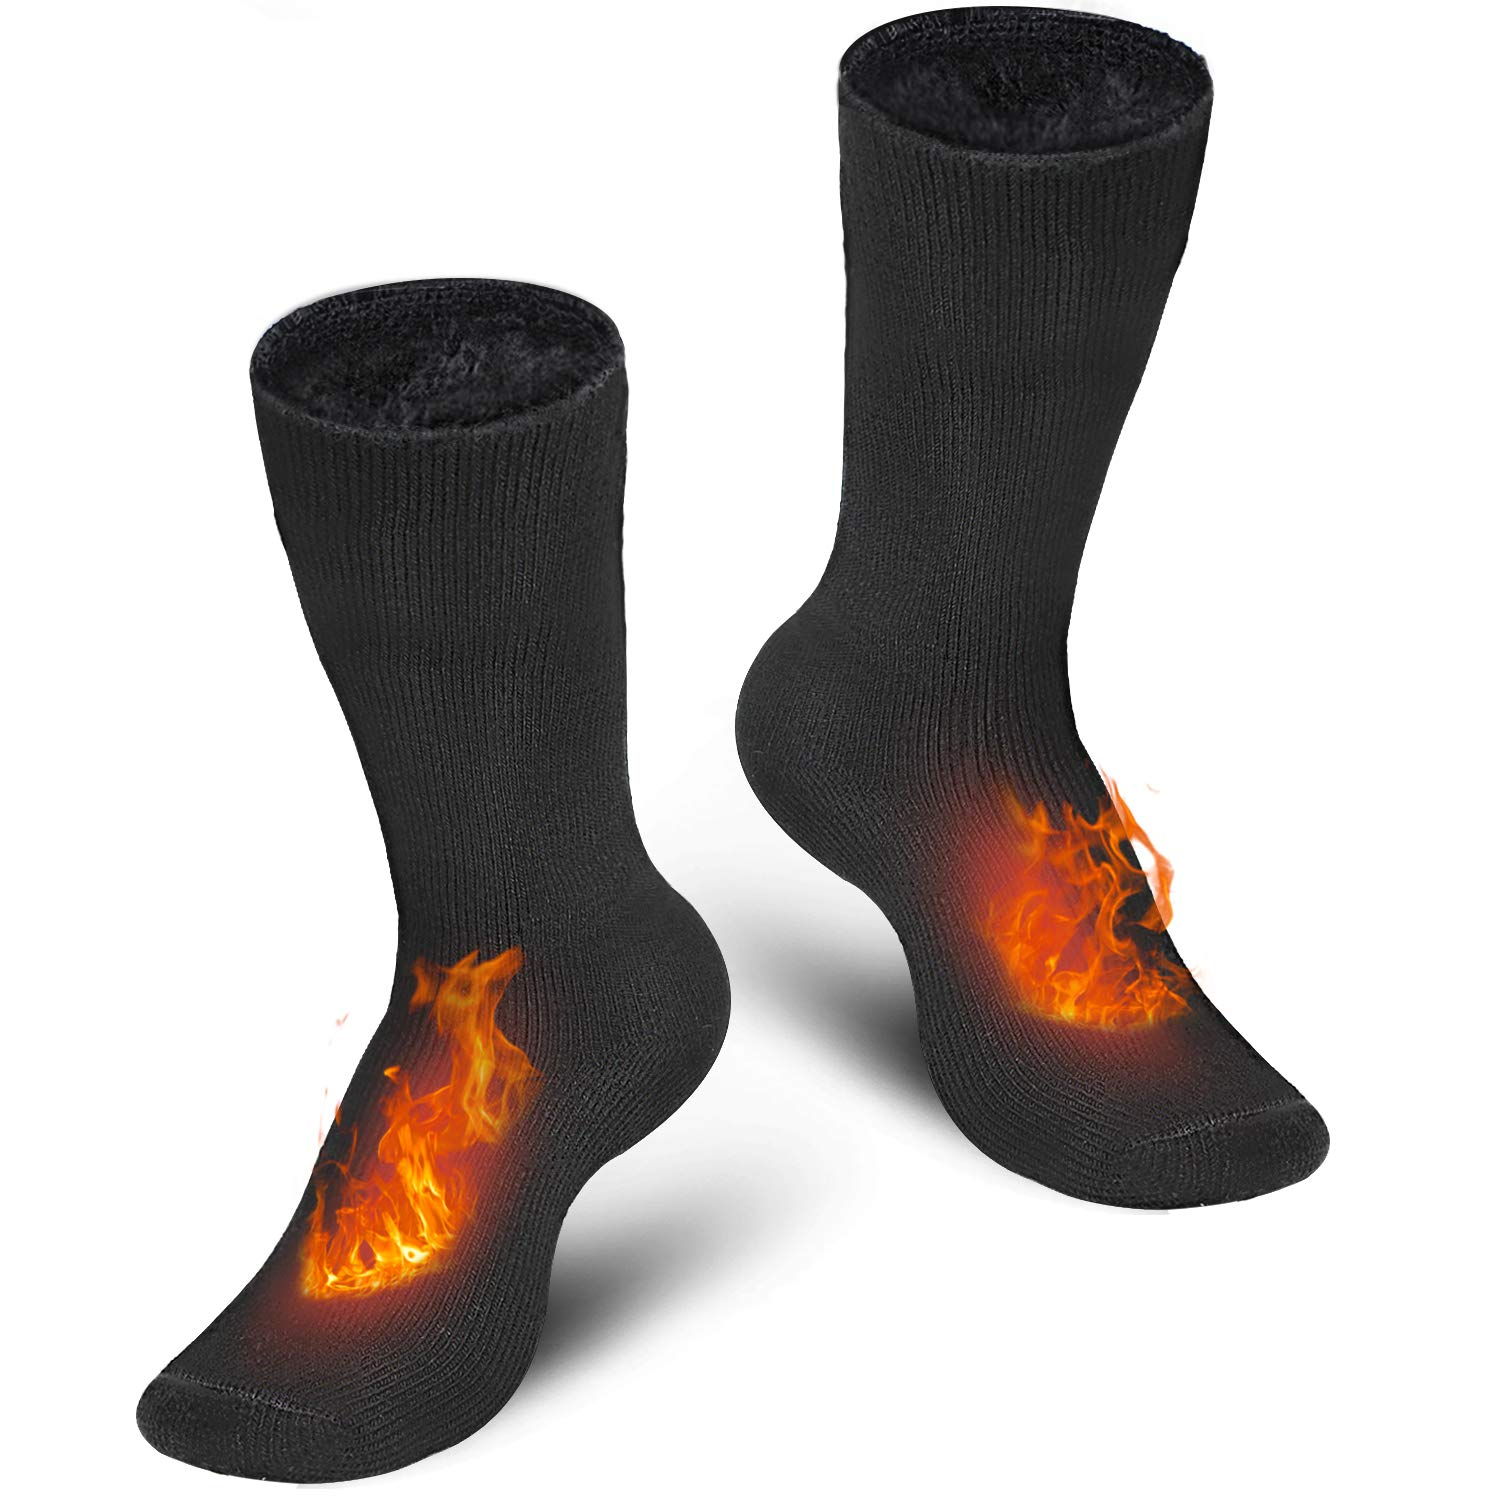 Pvendor Thermal Socks for Men, 2 Pairs of Heated Socks for Women, Boys Socks Extreme Cold Insulated Fuzzy Winter Socks